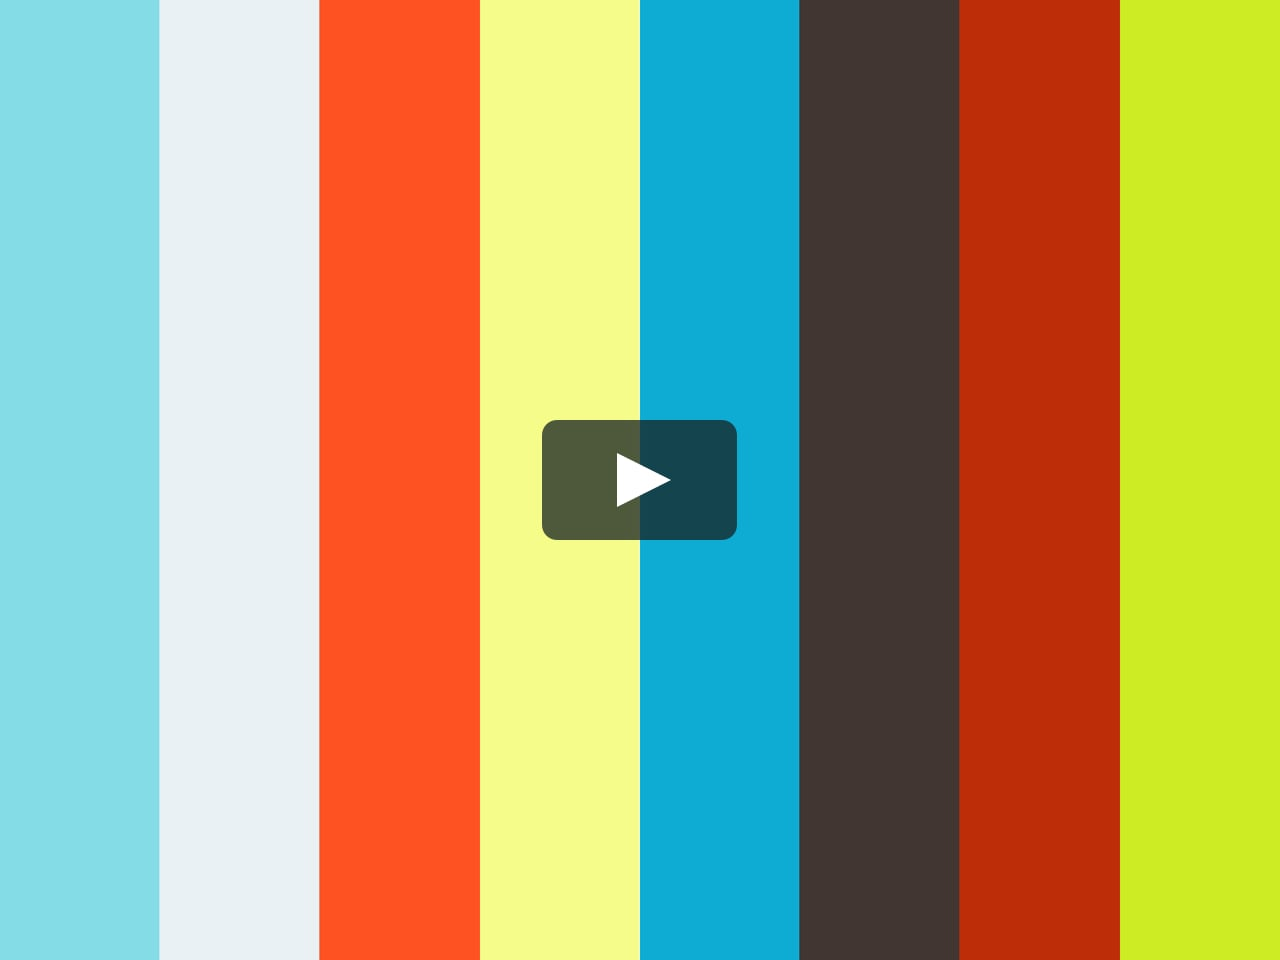 Consequence of impaired blood clotting mechanism - von Willebrand disease